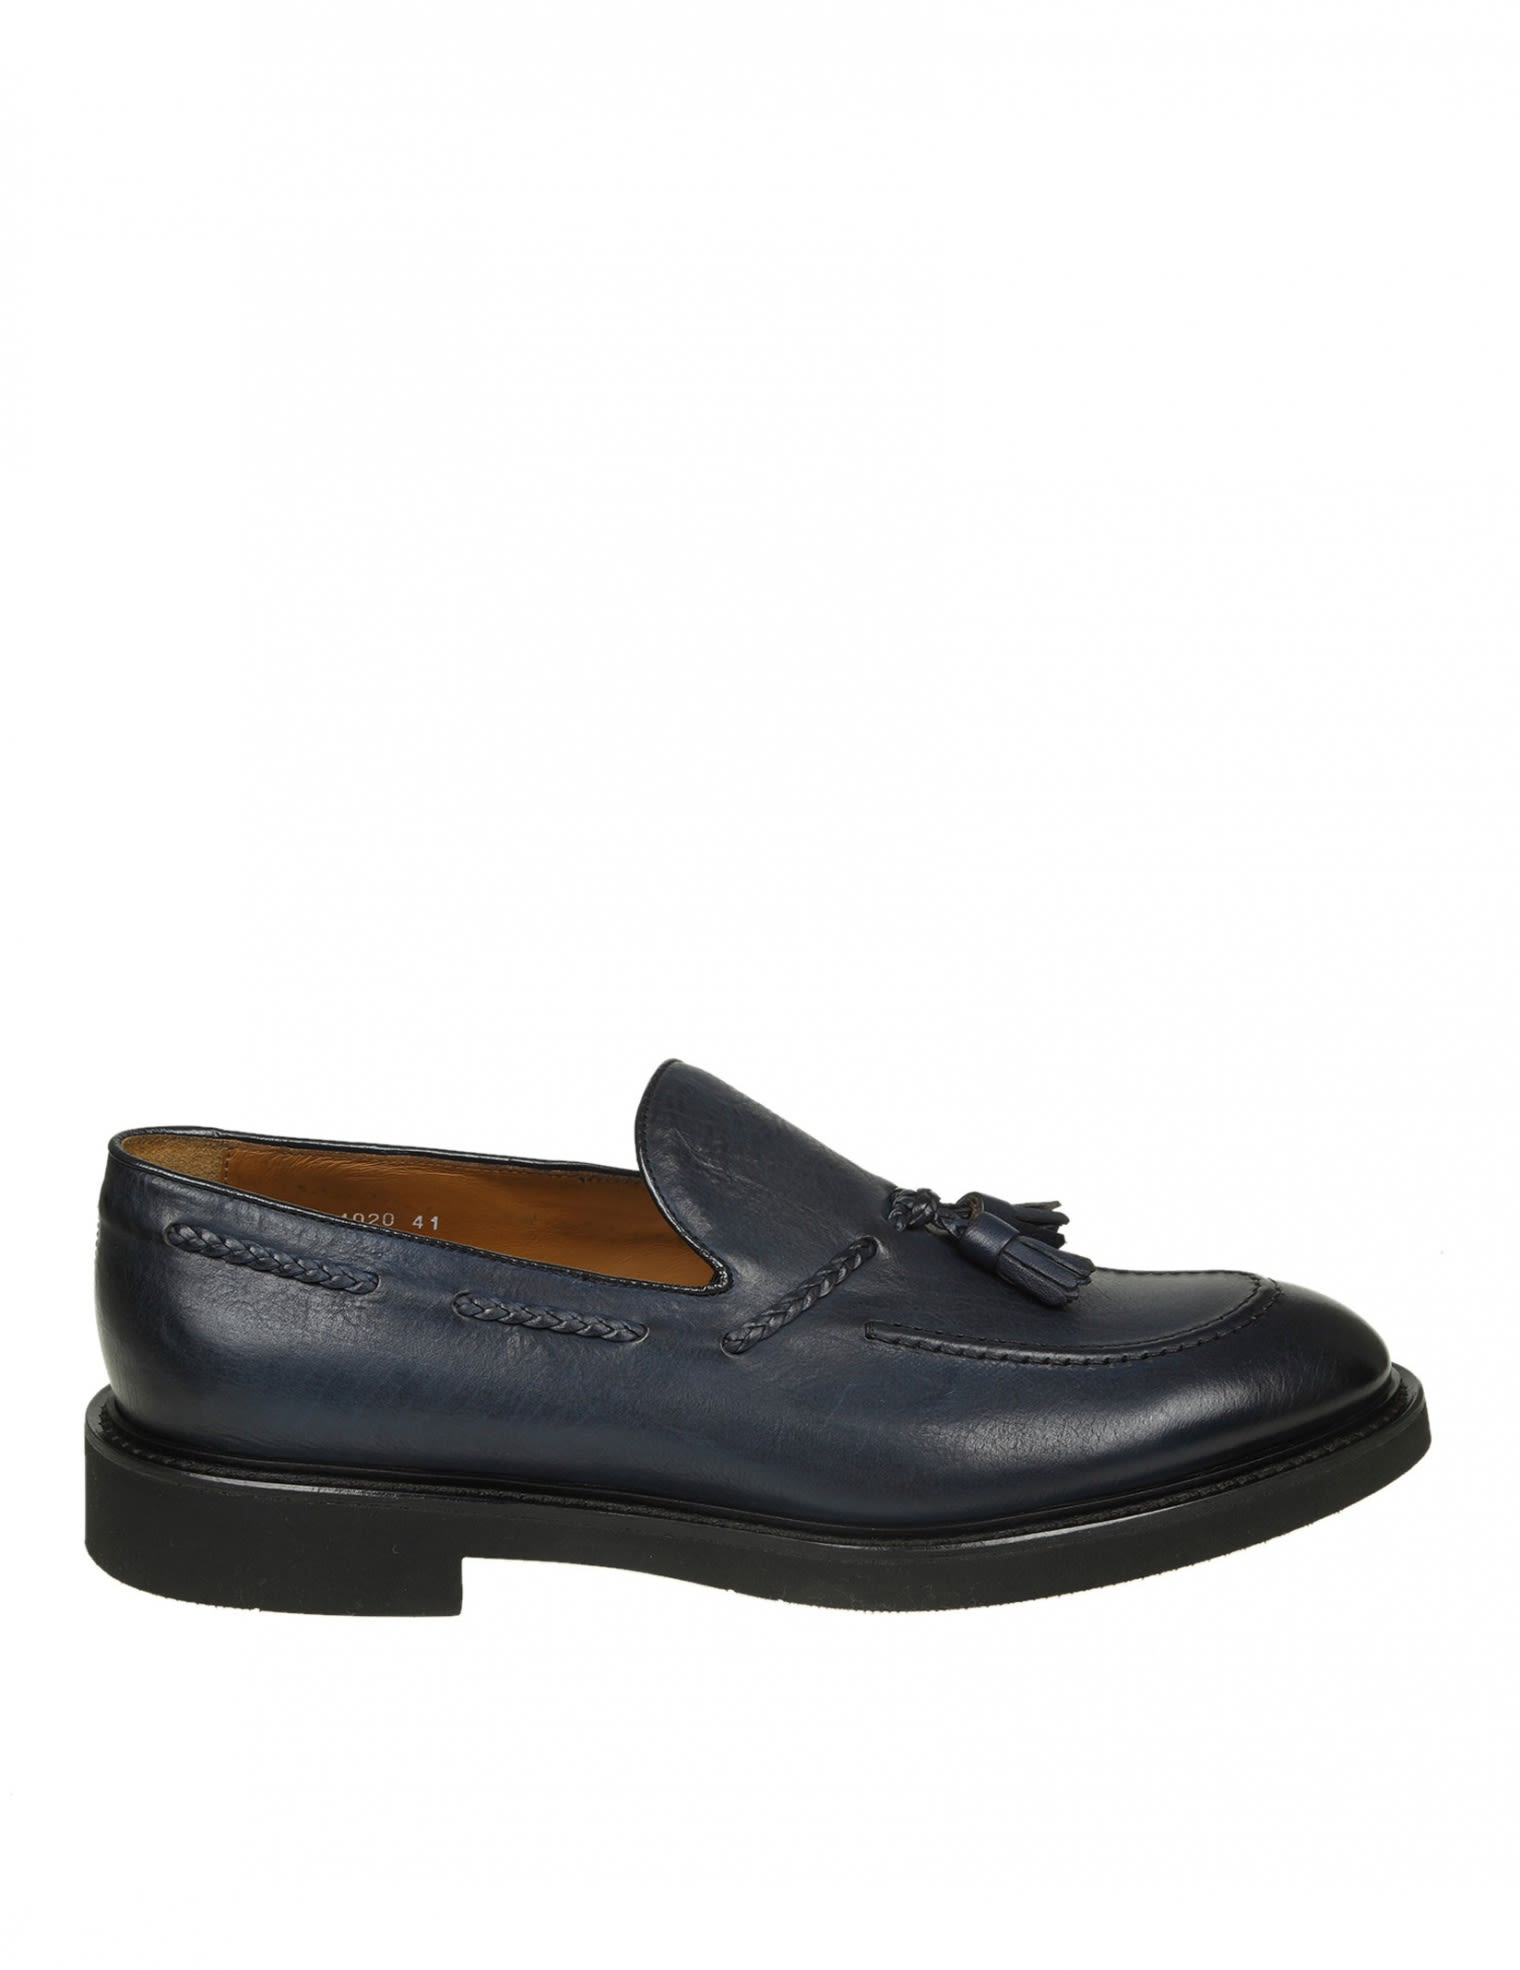 DOUCALS LOAFERS IN BLUE LEATHER WITH NAPPA DETAIL